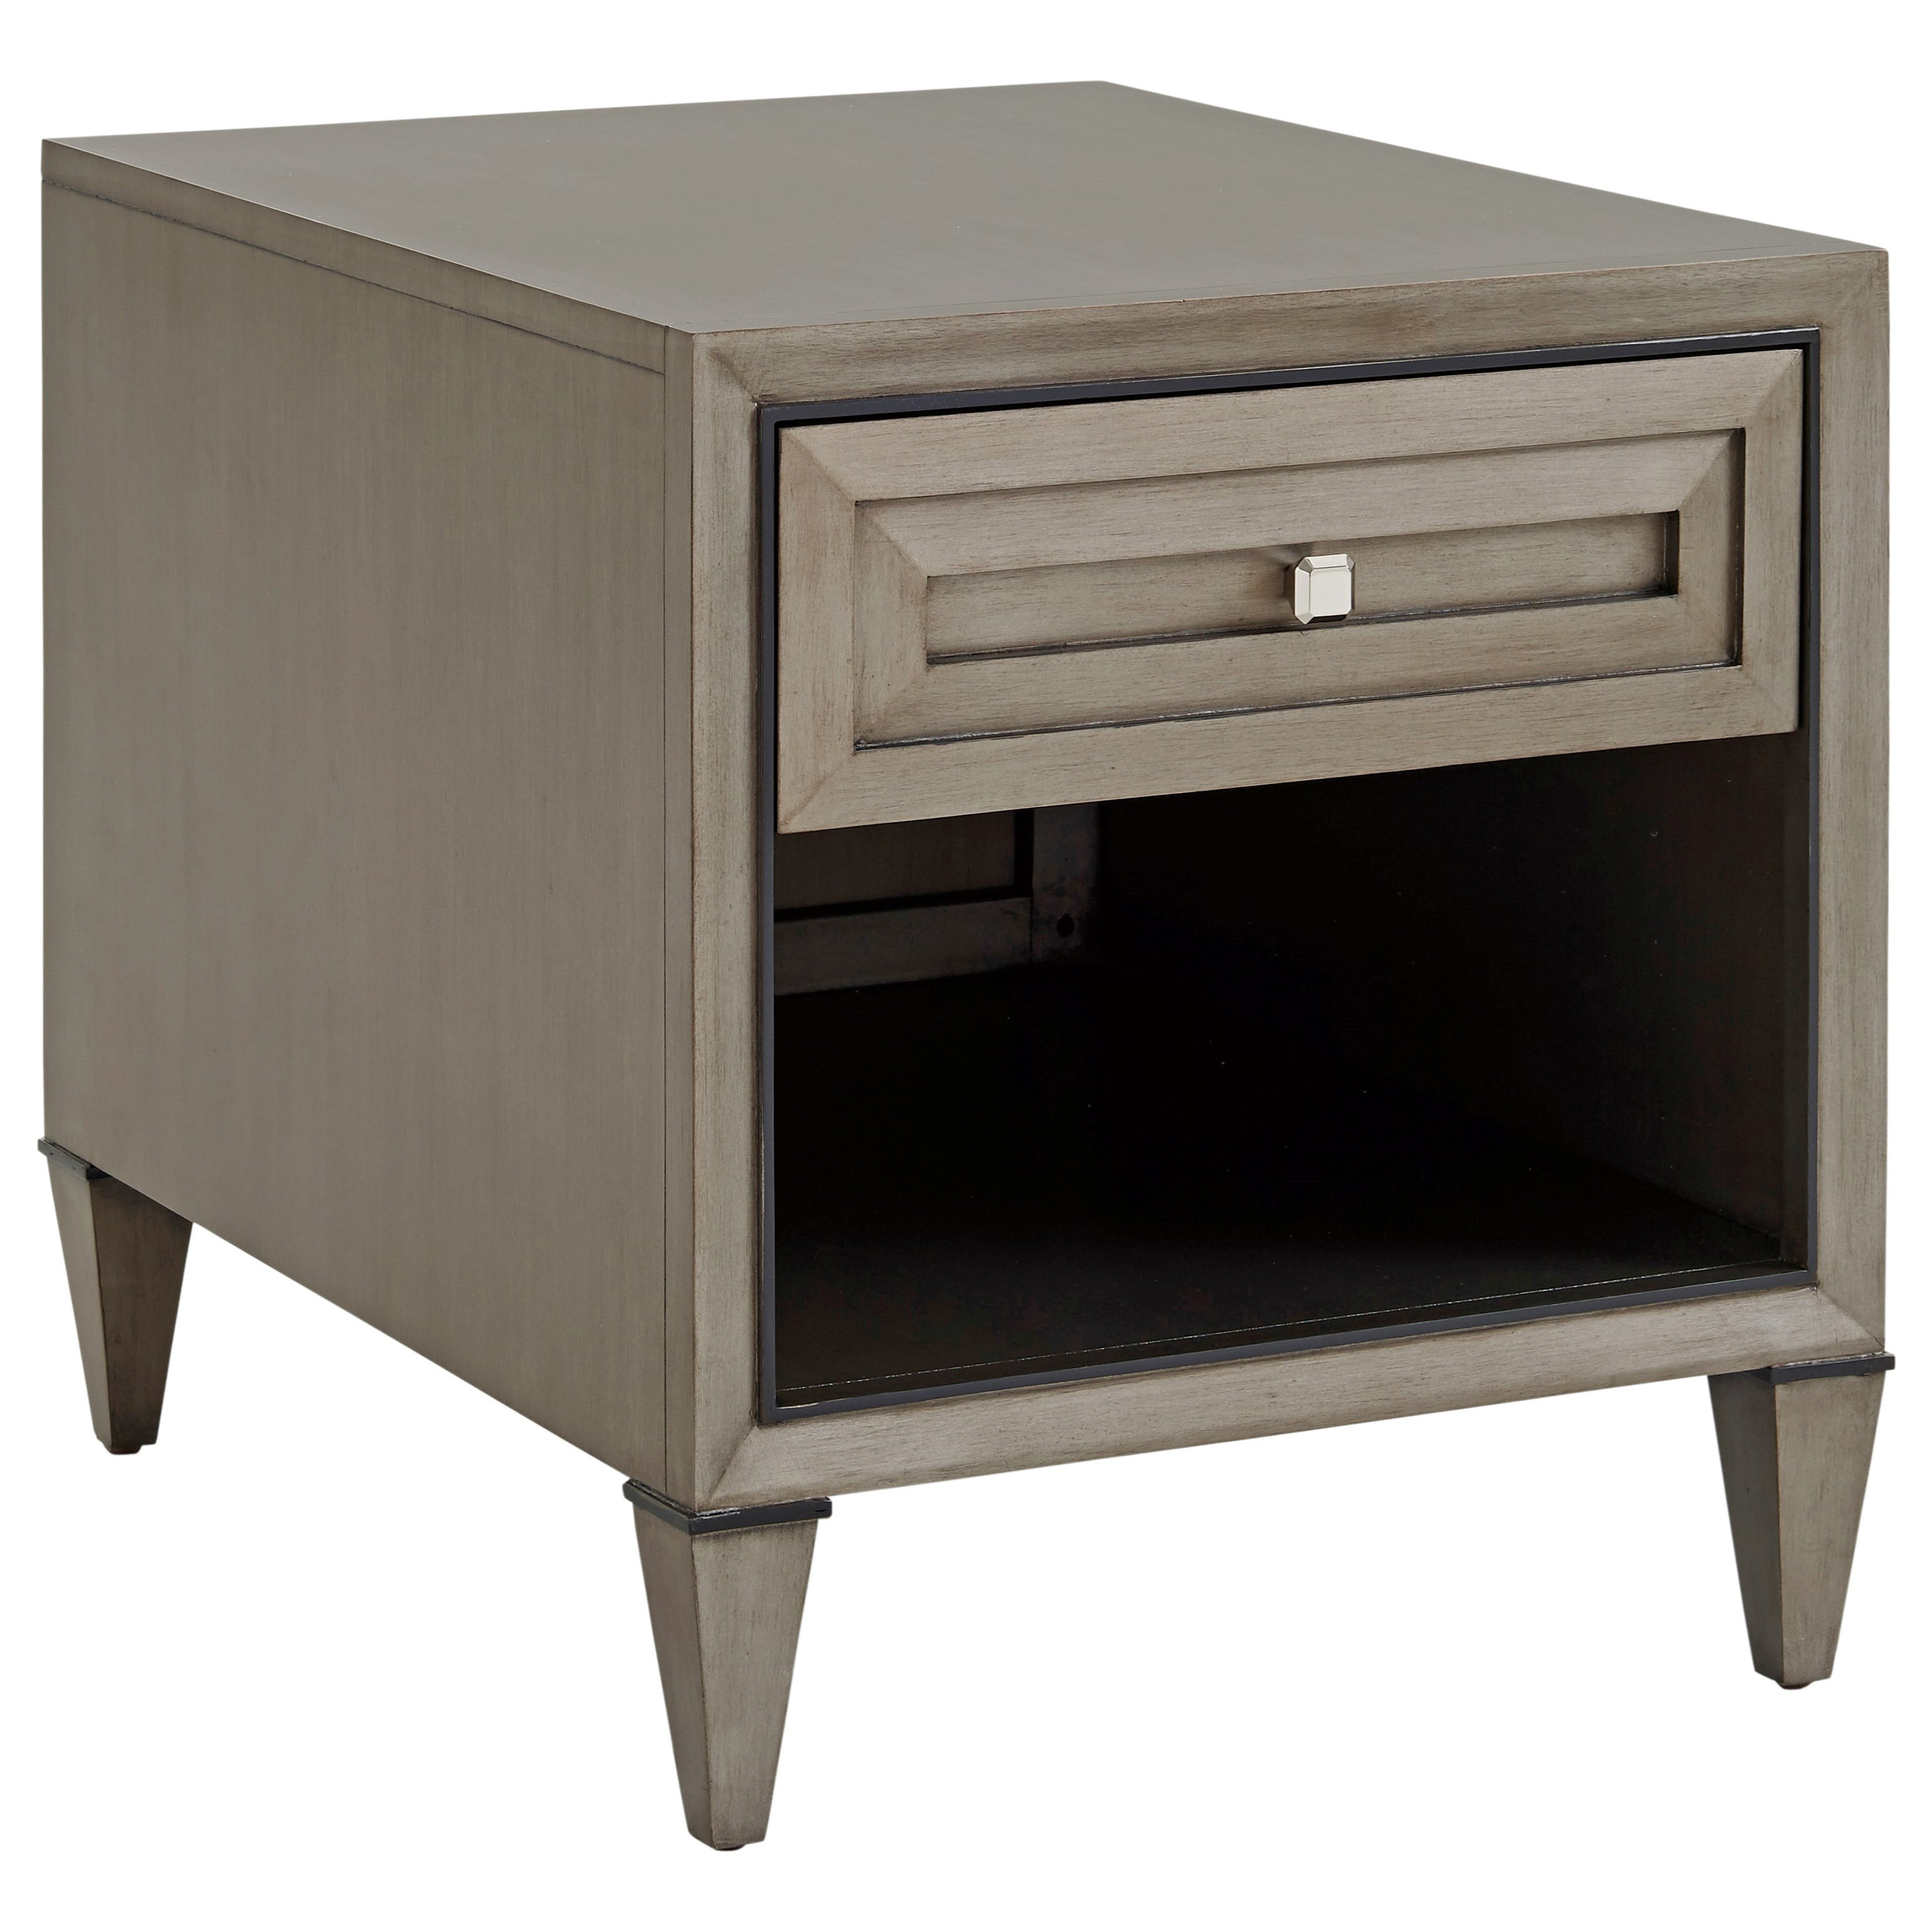 Ariana Verona End Table by Lexington at Baer's Furniture